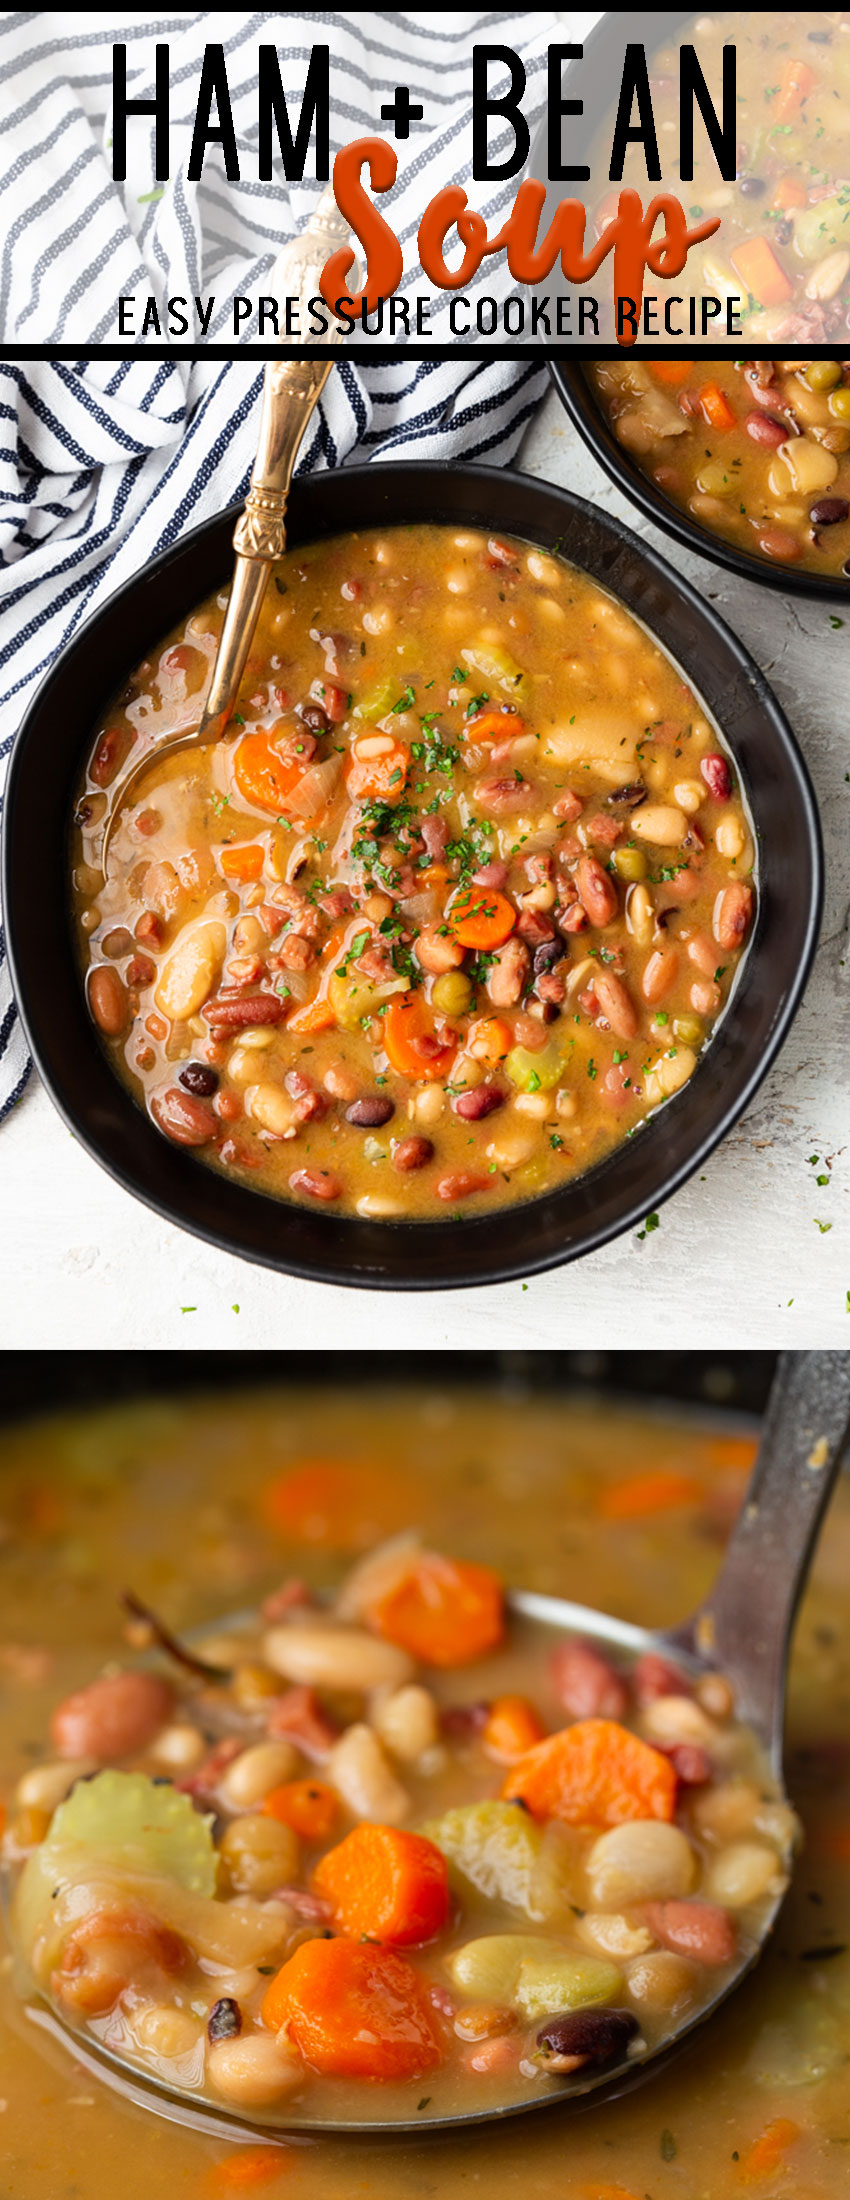 Ham and Bean Soup cooked in the instant pot pressure cooker.